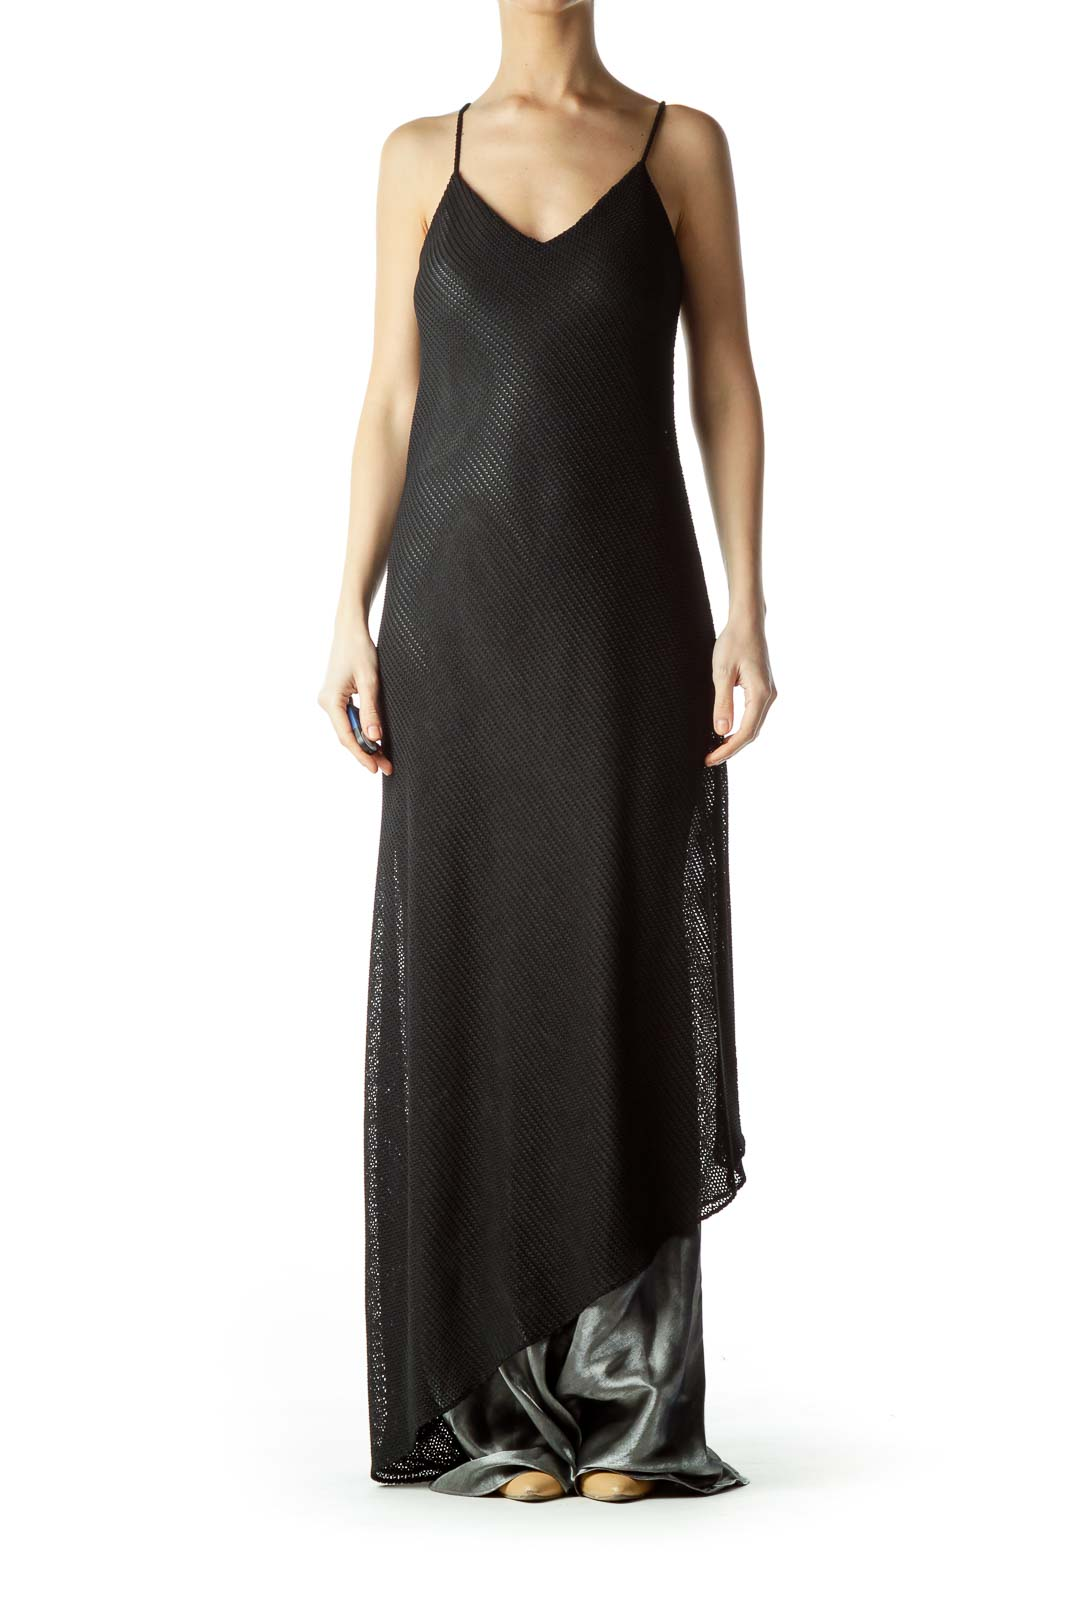 Black Cable Knit Spaghetti Strap Maxi Dress